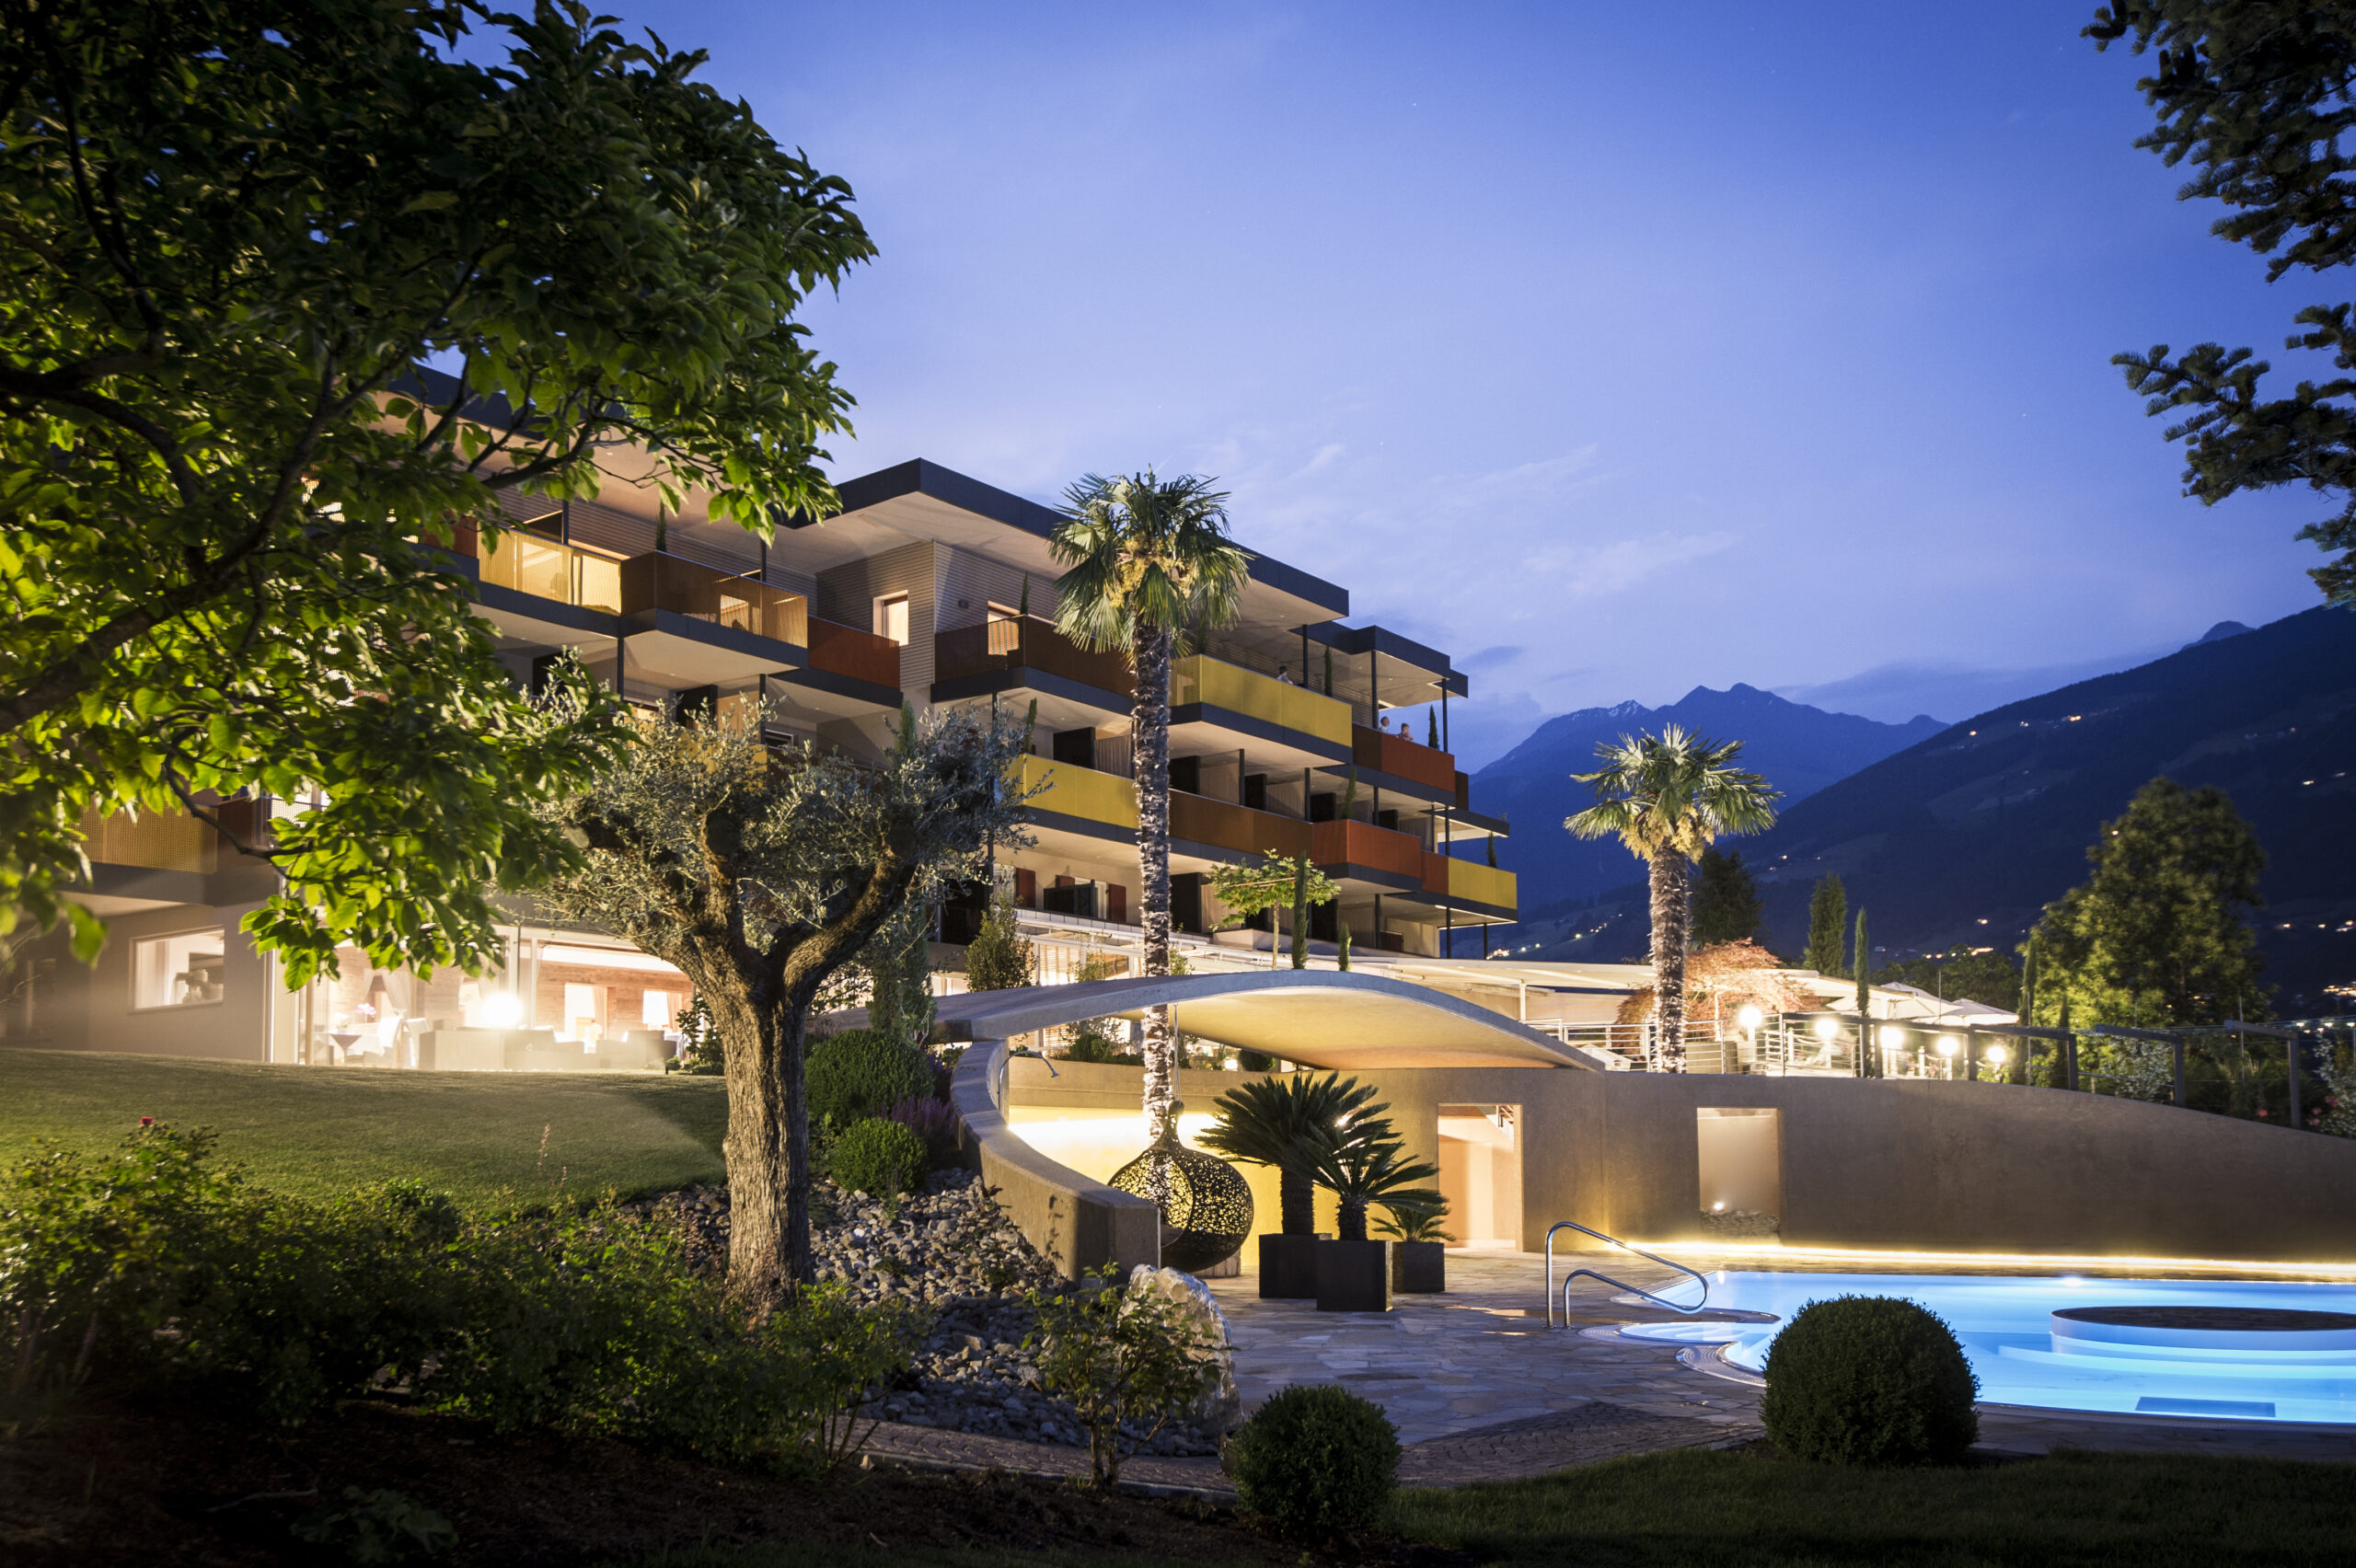 """Hotel Johannis: """"green space = luxurious space"""" (noa* network of architecture)"""